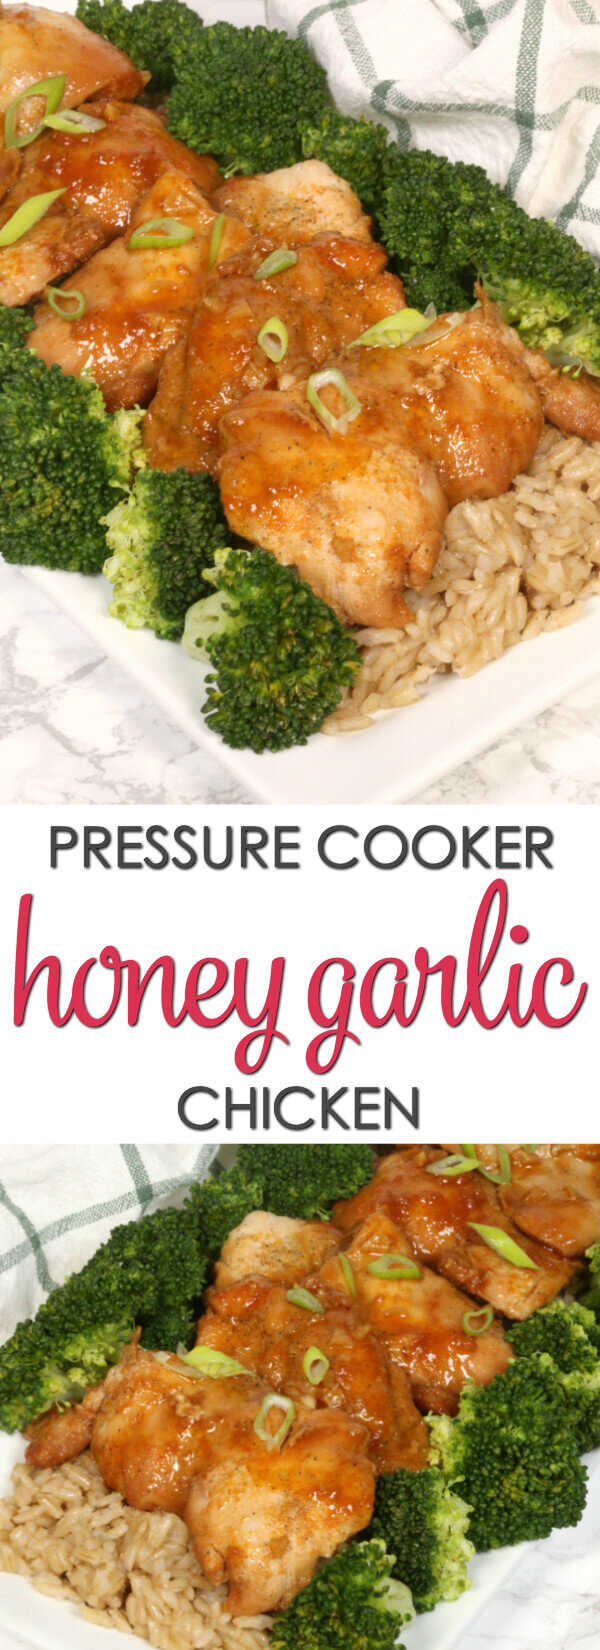 Instant Pot Pressure Cooker Honey Garlic Chicken - this is one of my favorite insta pot recipes because it's ready in less than 30 minutes